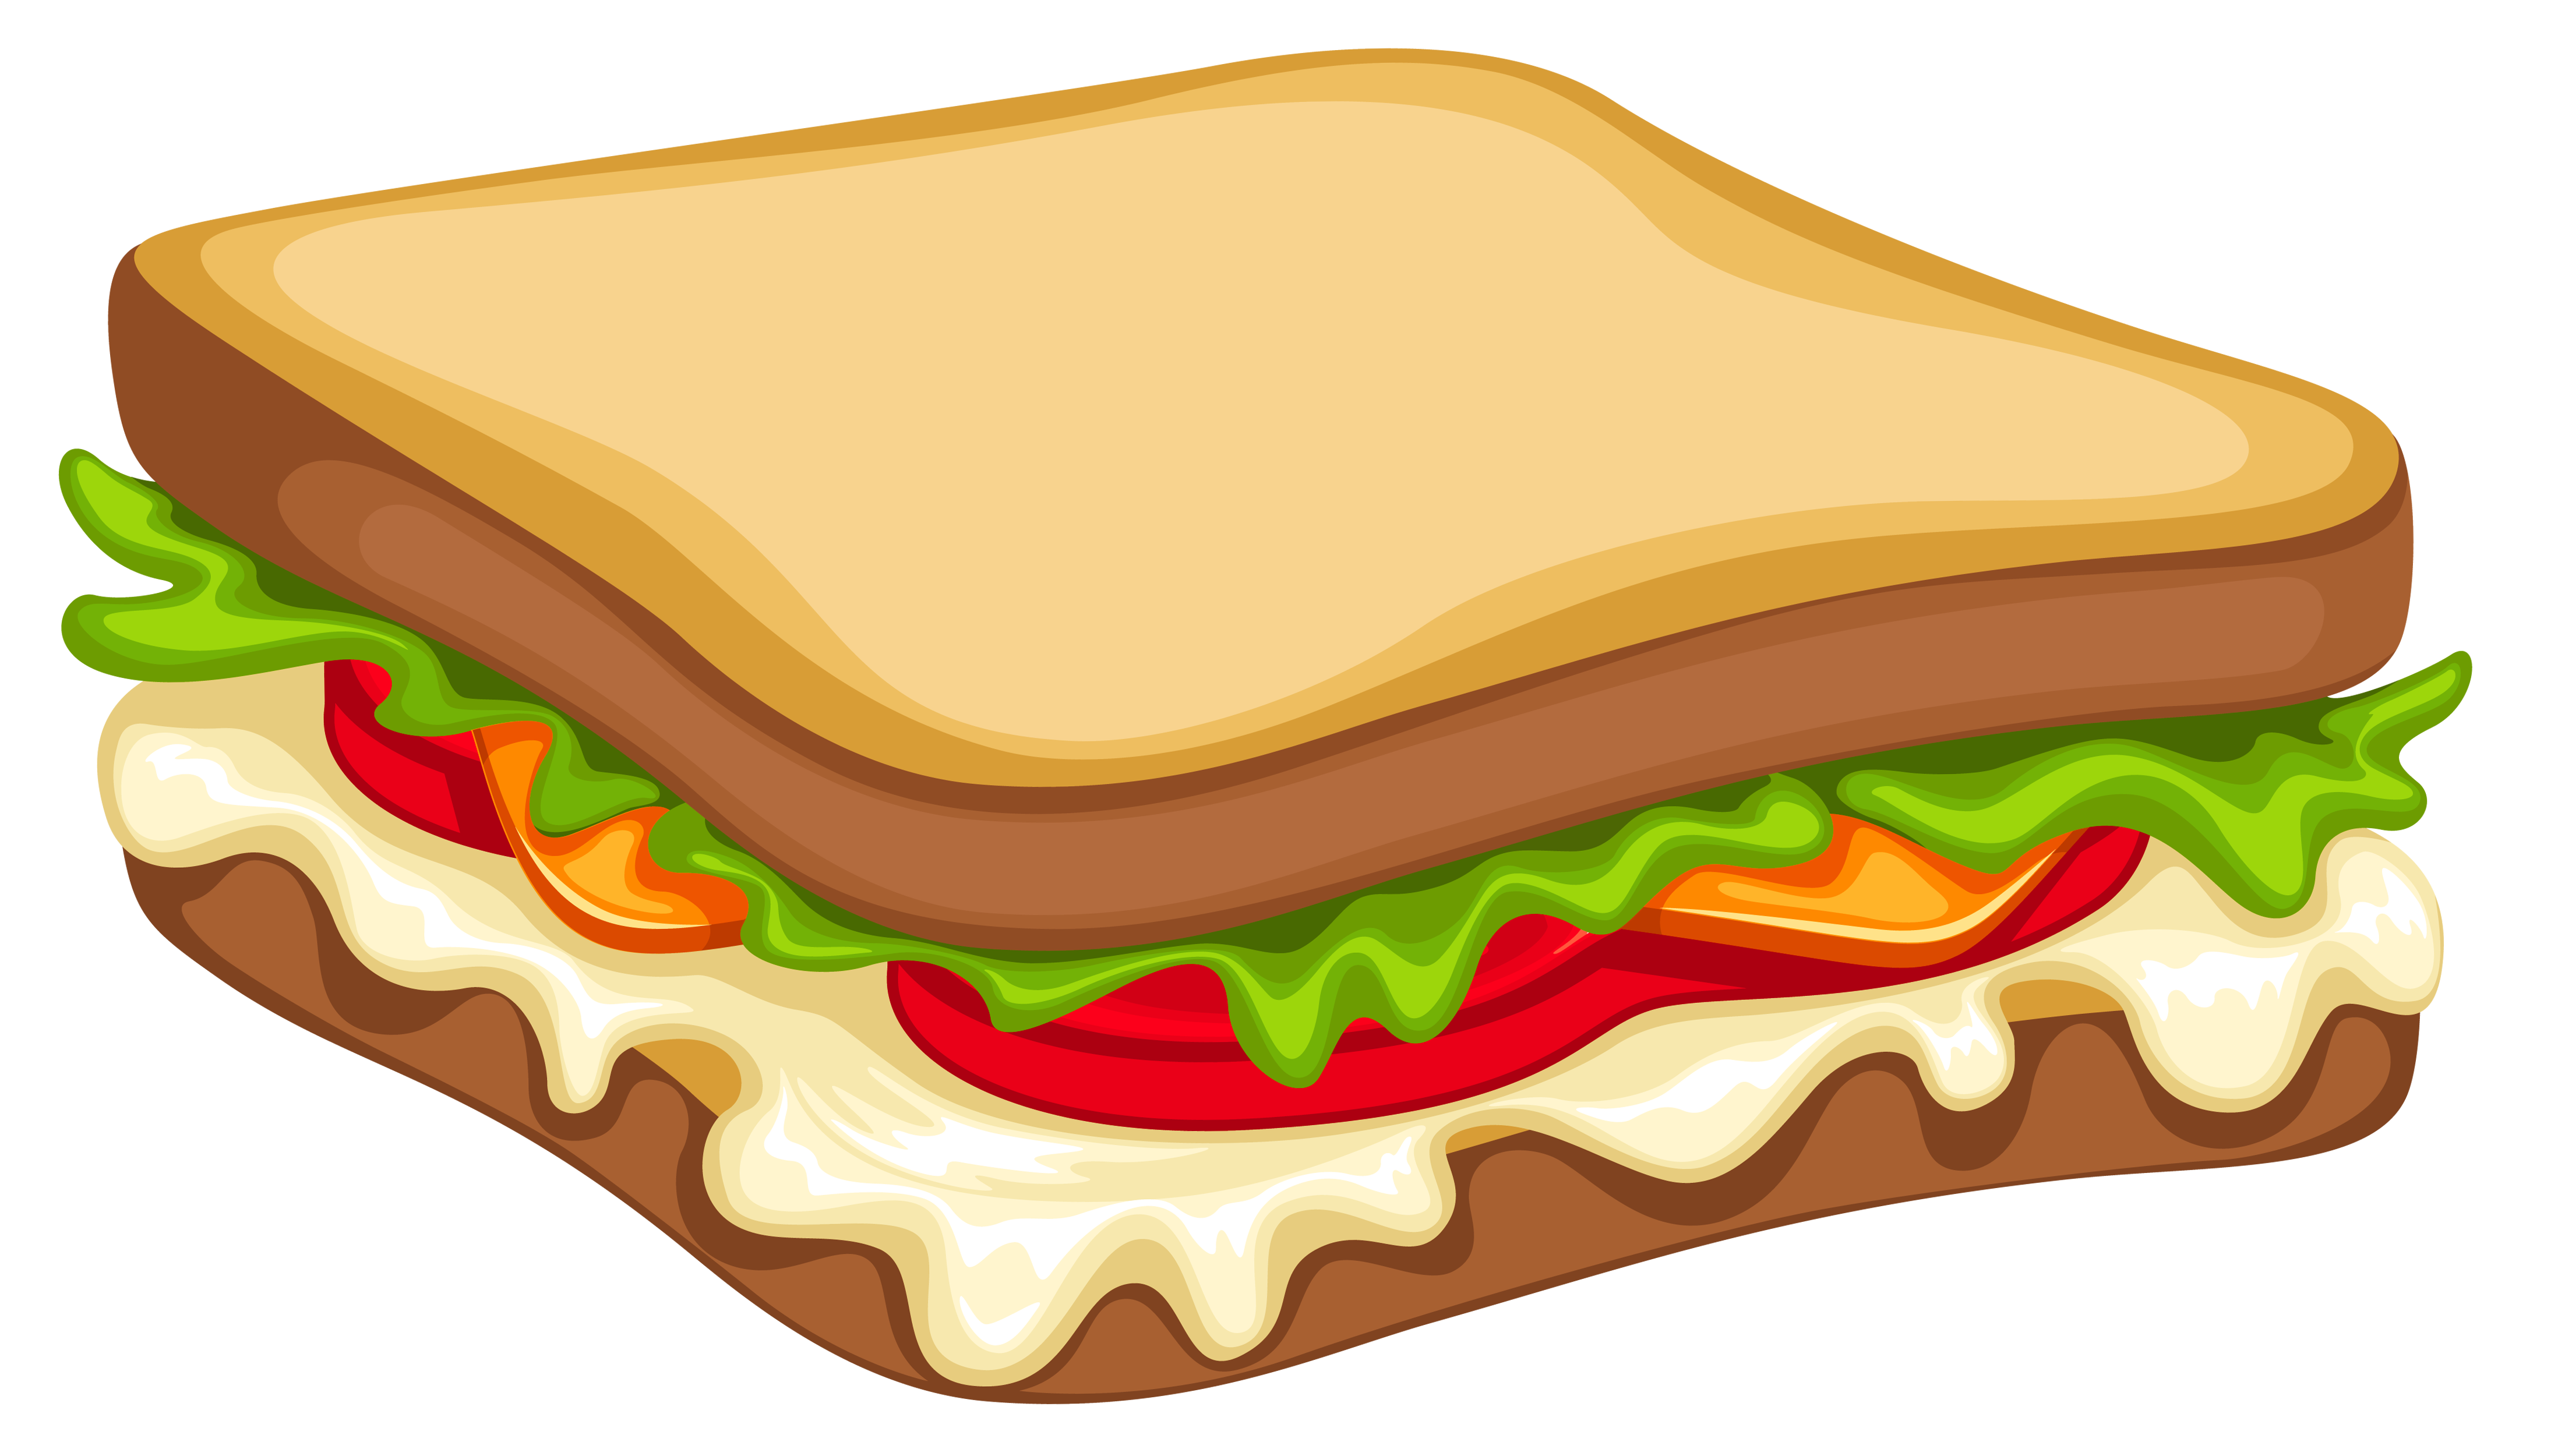 Meatball sandwich clipart picture free download Meatball sub clip art - Clip Art Library picture free download